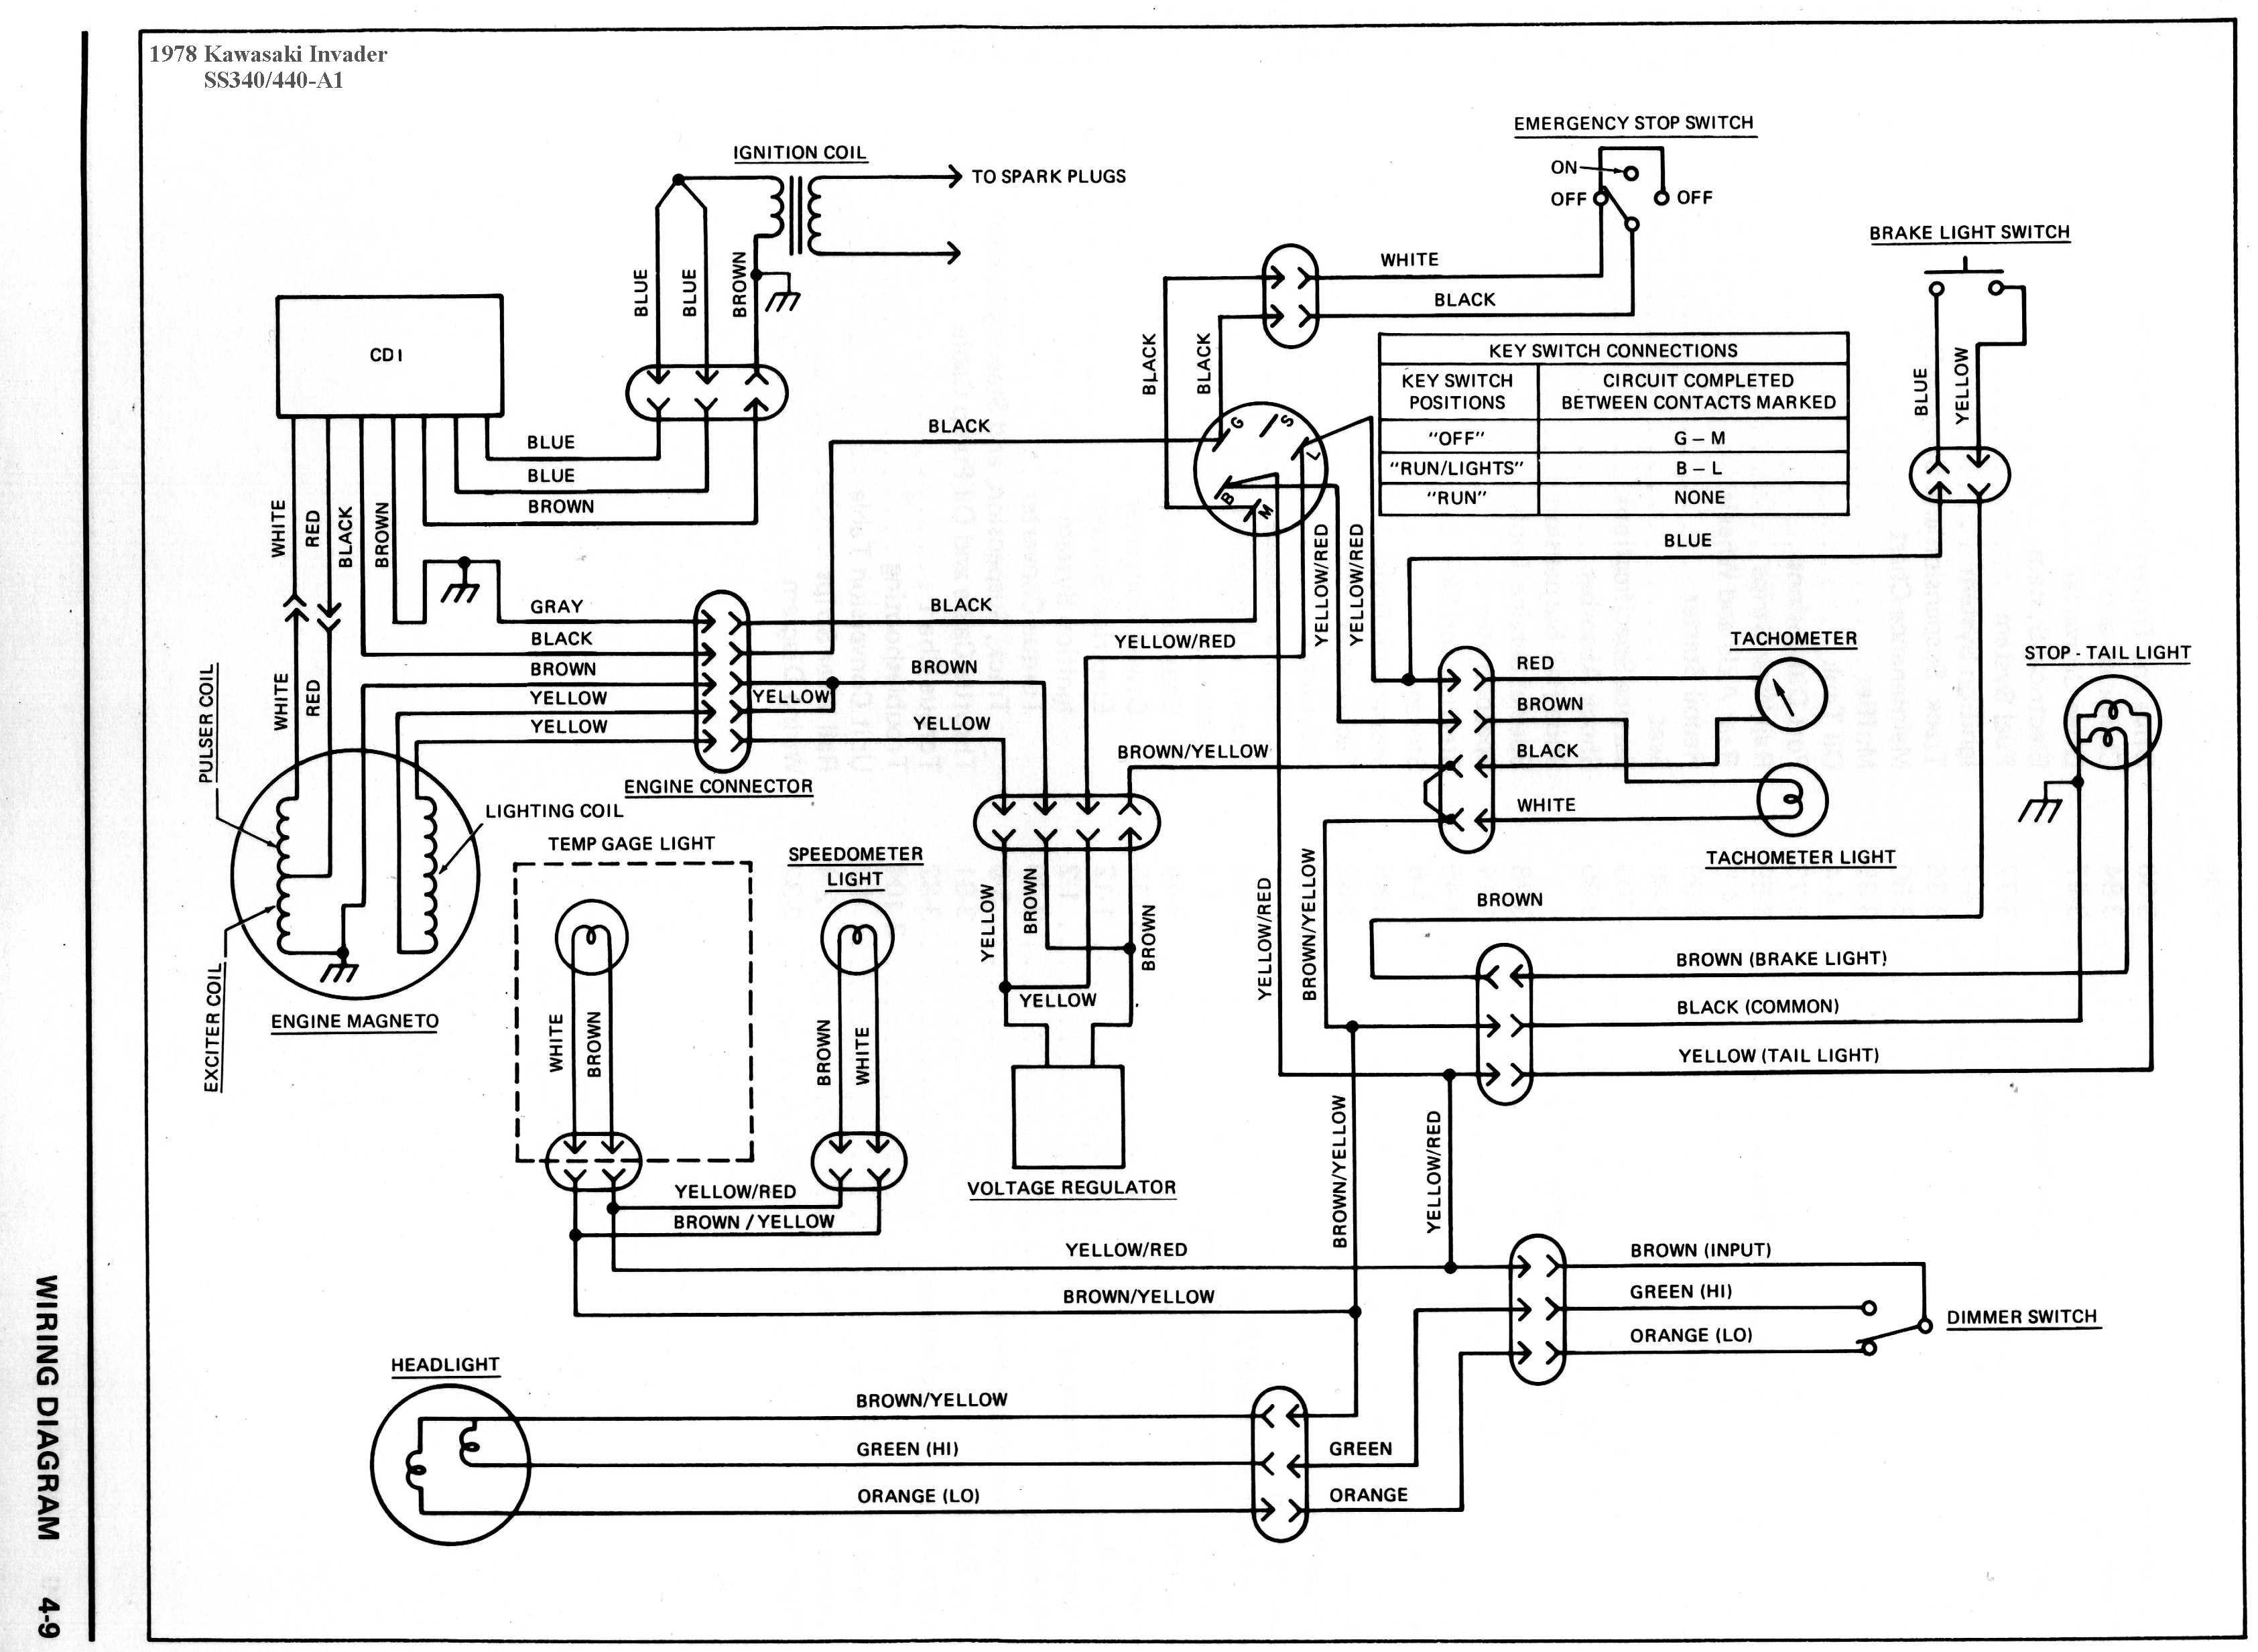 kawasaki engine wiring diagrams wiring diagram echo kawasaki ninja wiring diagram kawasaki engine wiring diagrams